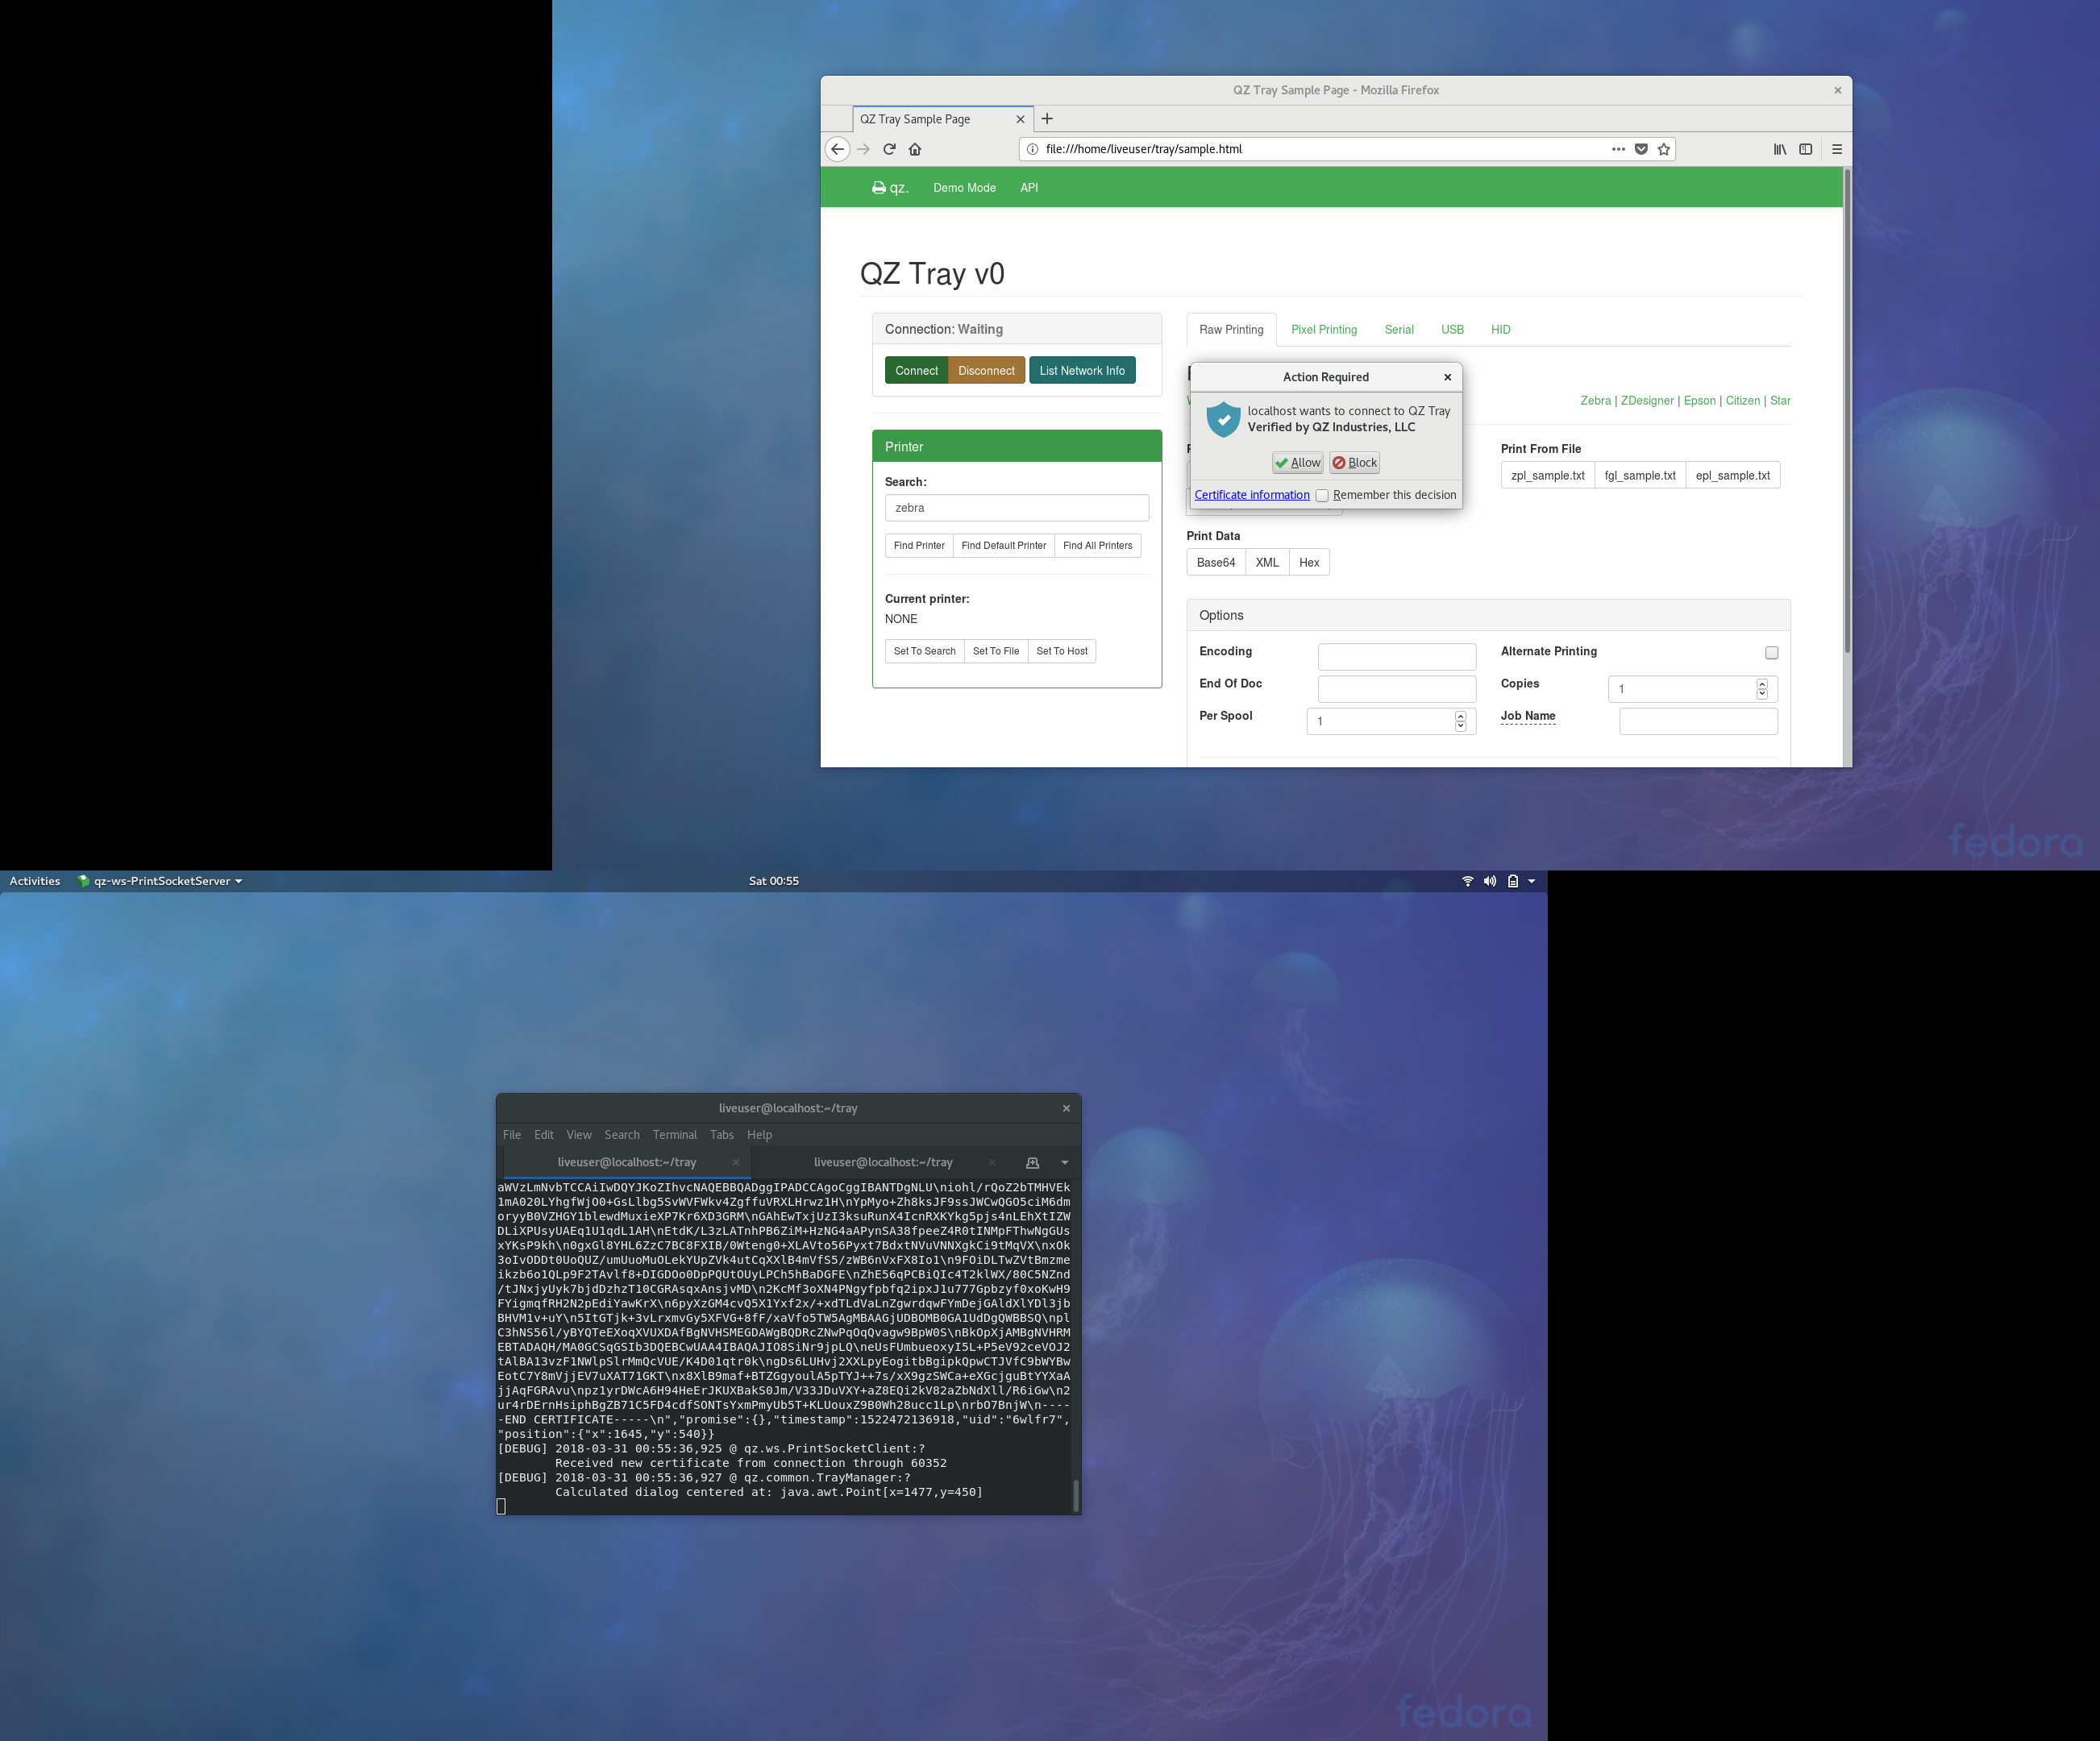 Place Popup on Correct Screen · Issue #284 · qzind/tray · GitHub